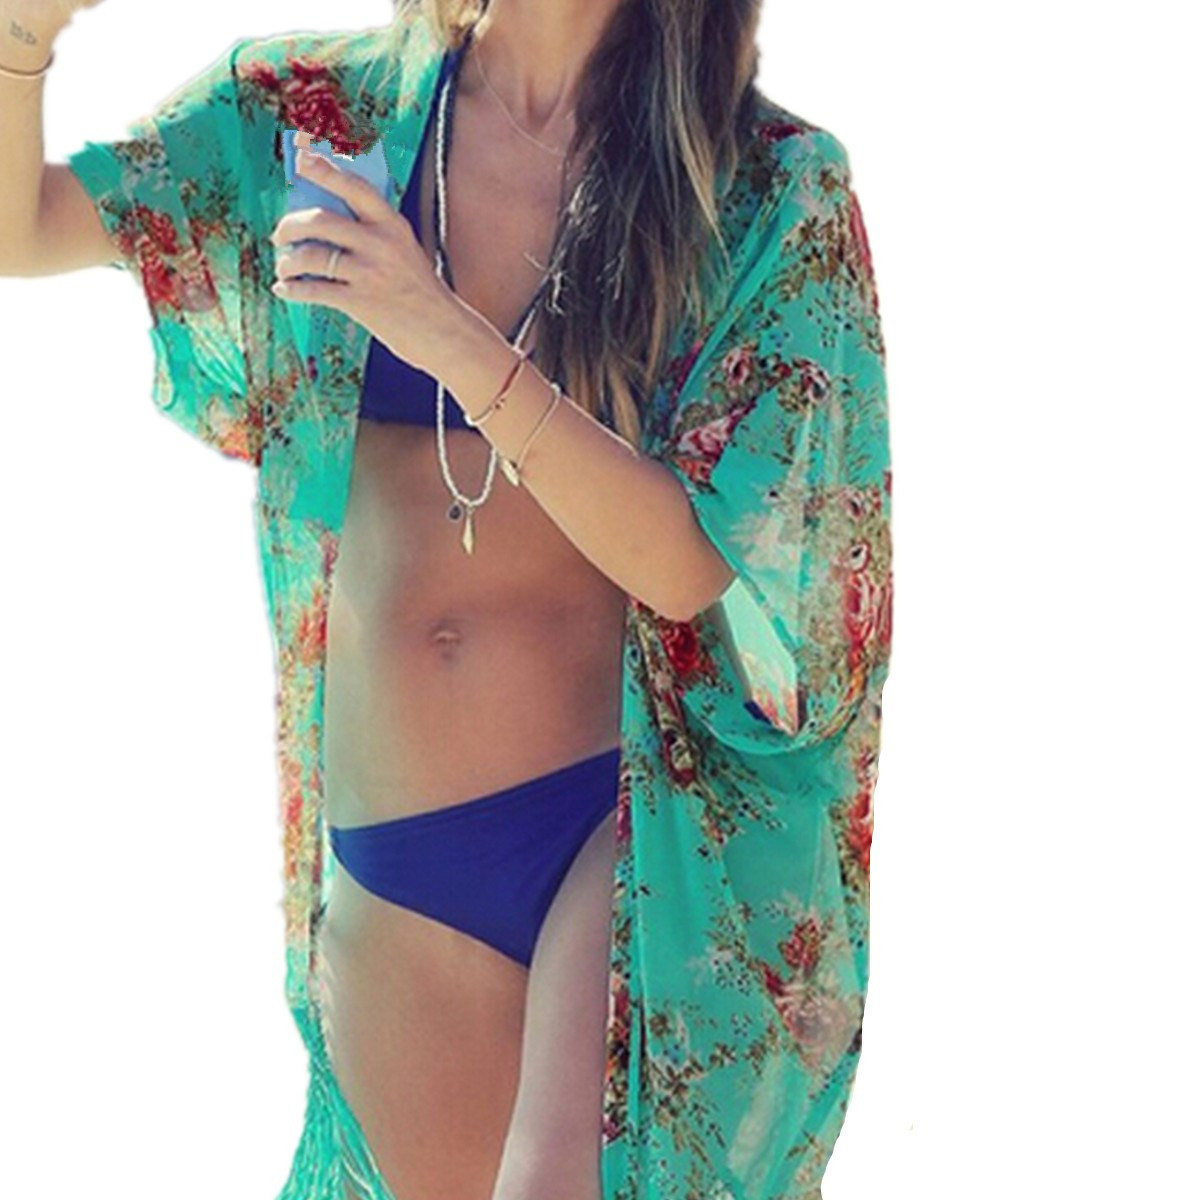 807649dcc77 Beach Cover Up Swimsuit Bathing Suit Cover Up Kimono Beach Wear on ...